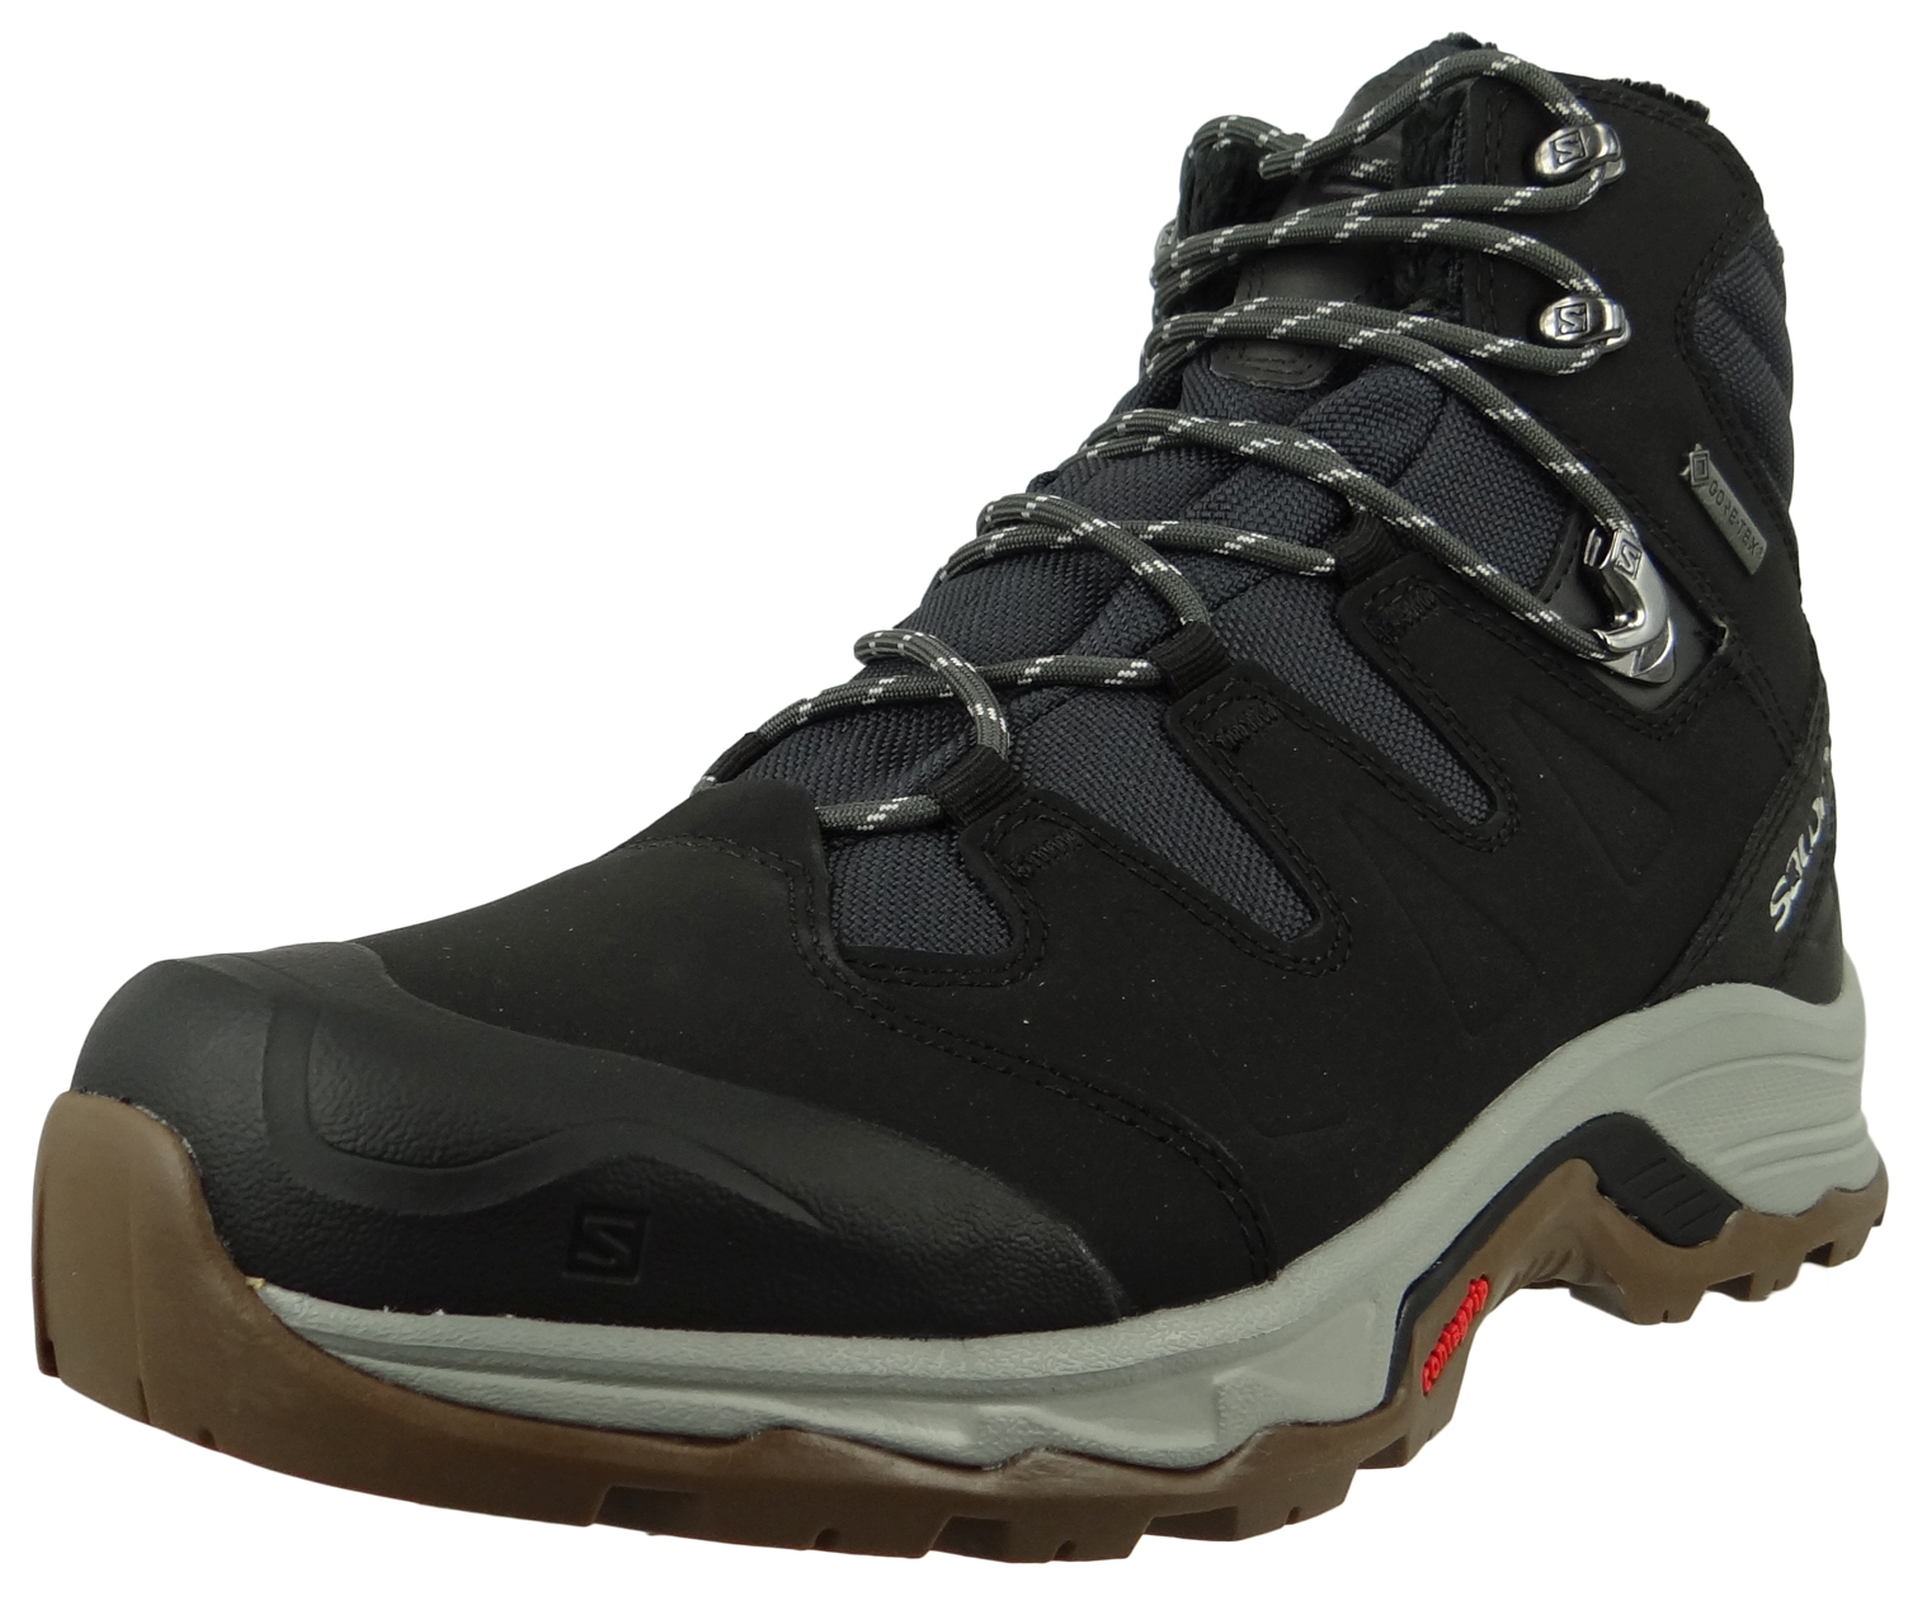 Salomon Schuhe Wanderschuhe Quest Winter GTX® 398547 Schwarz Phantom Black Vapor Blue